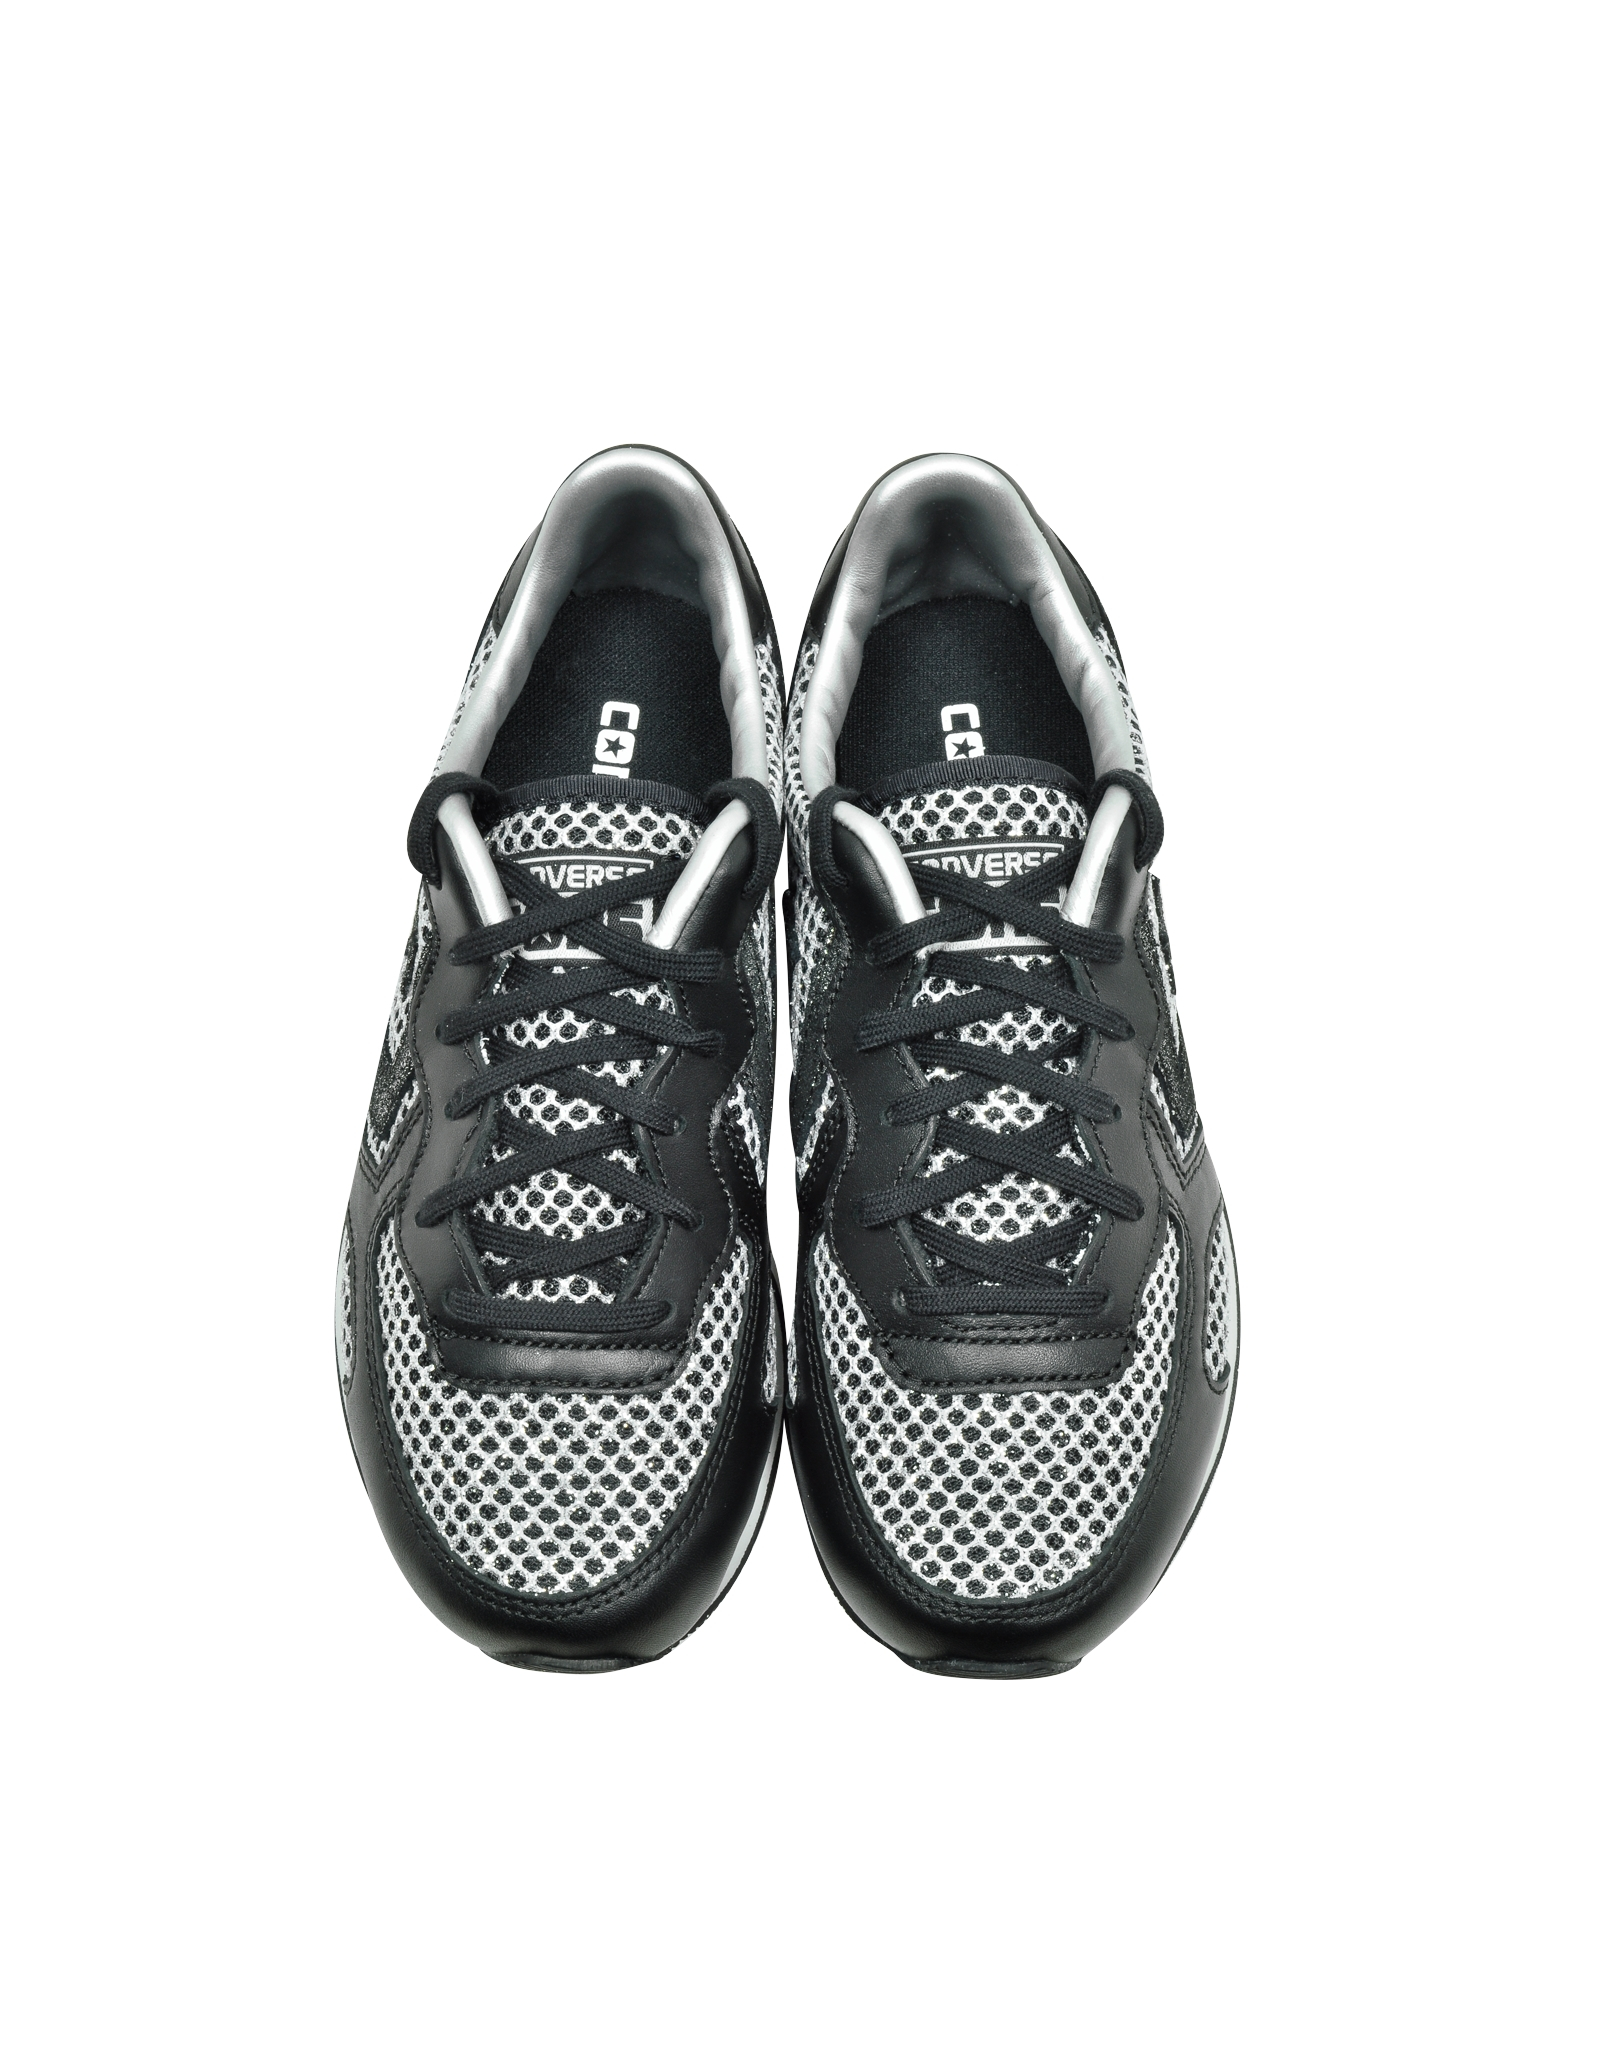 c819da9ae8a converse-limited-edition-auckland-racer-ox -glitter-and-metallic-mesh-sneakers-product-3-951510758-normal.jpeg